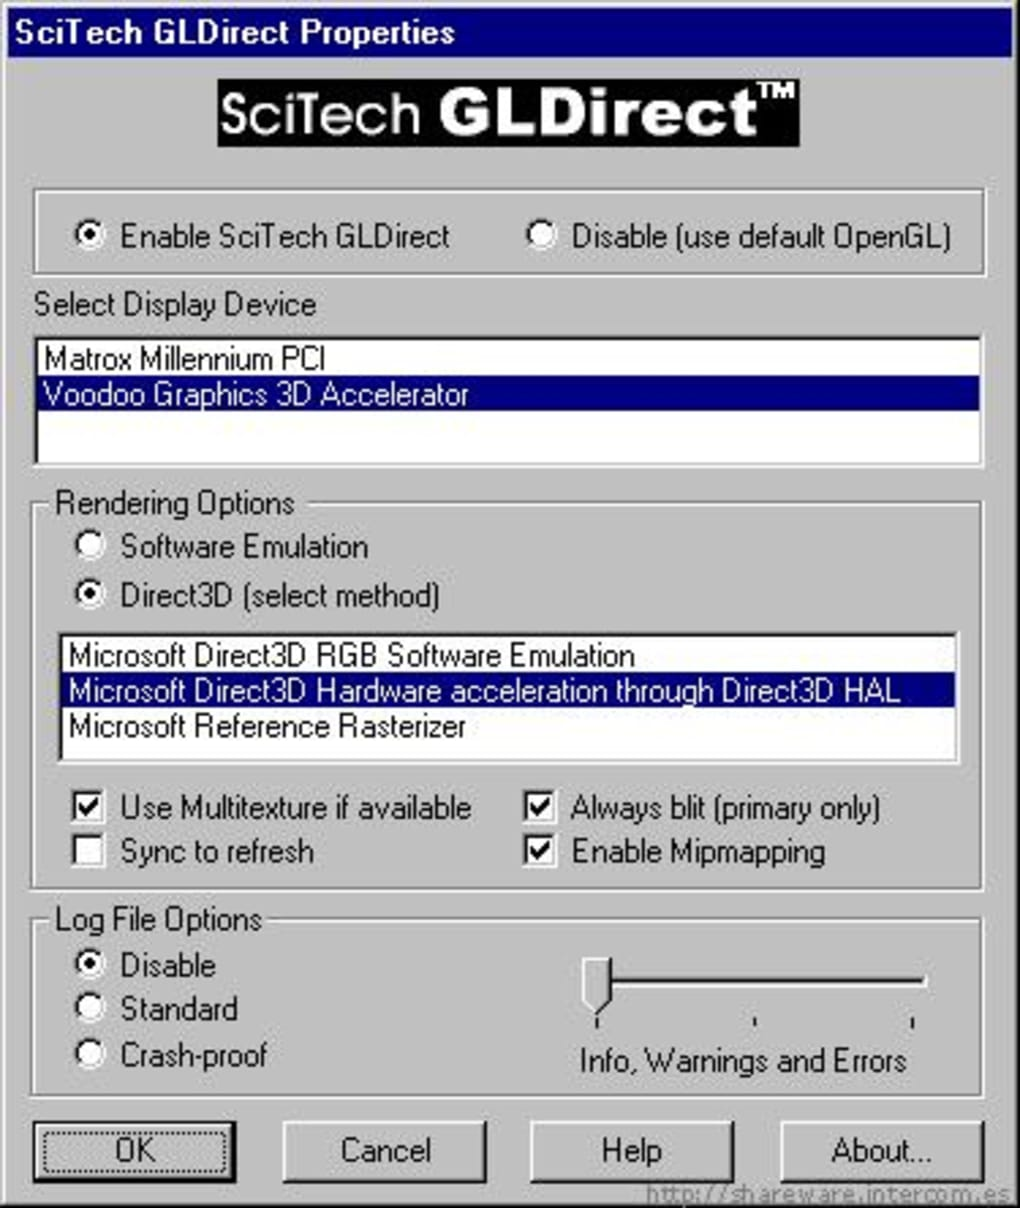 scitech gldirect 5.0.2